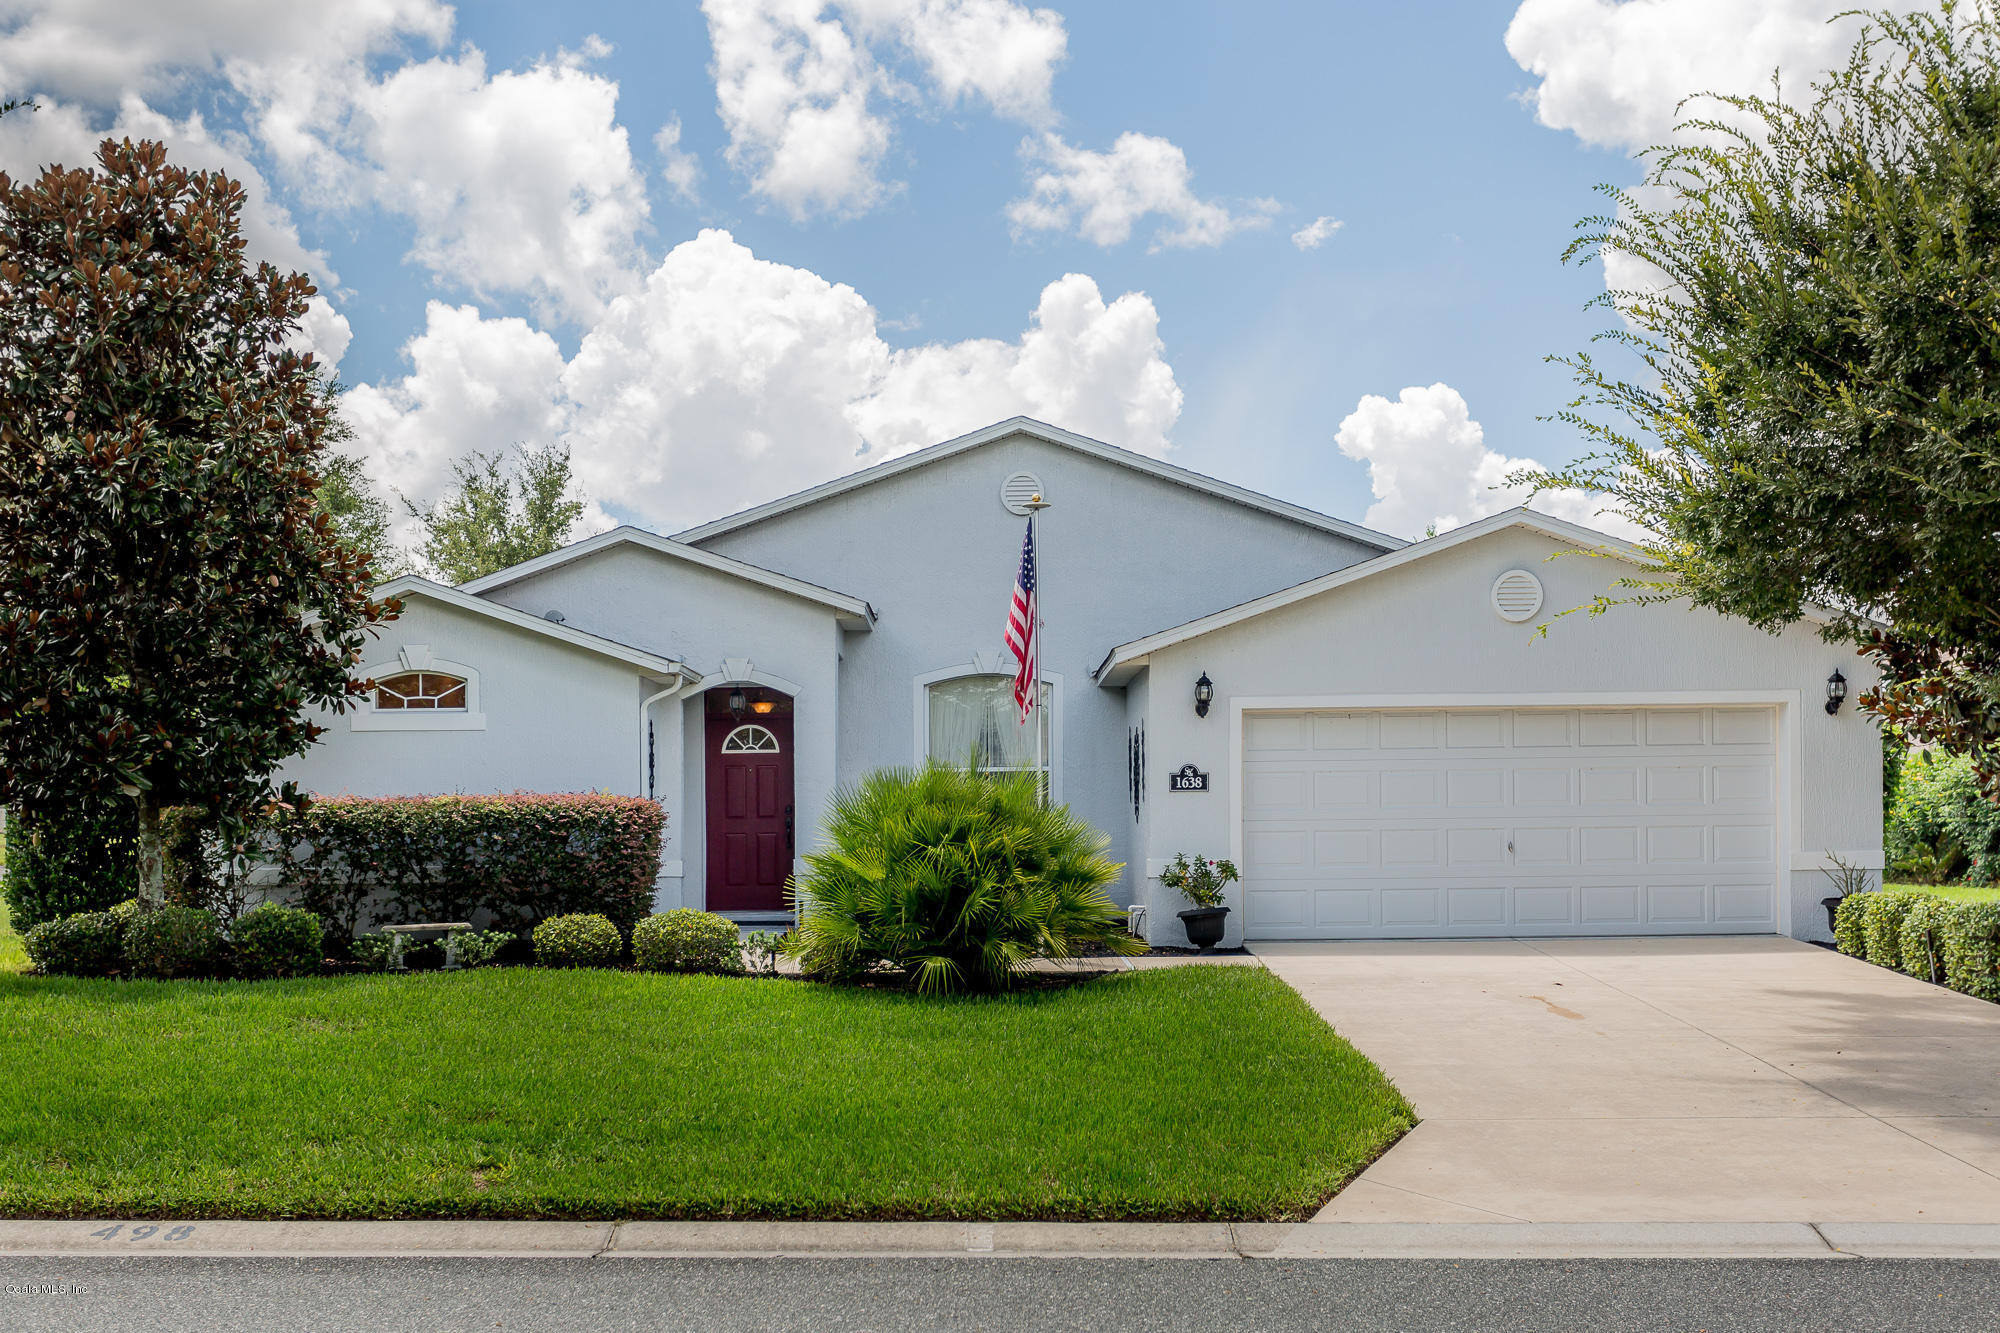 1638 SW 158TH LANE, OCALA, FL 34473